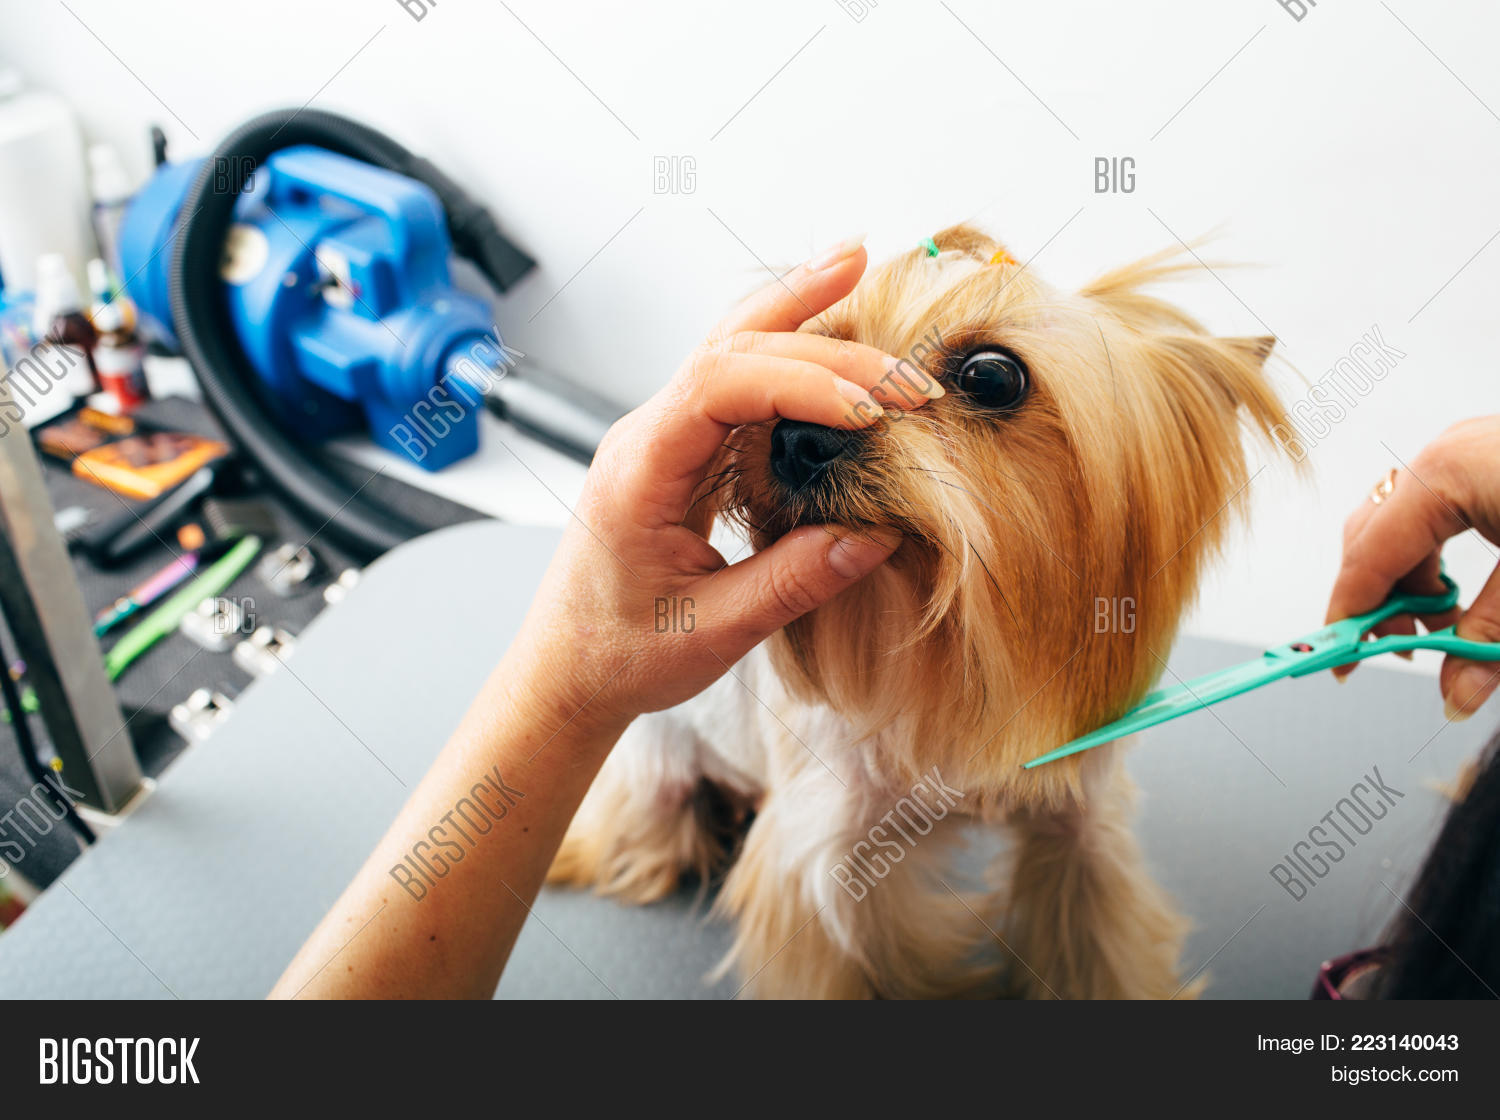 Yorkshire Terrier Image Photo Free Trial Bigstock